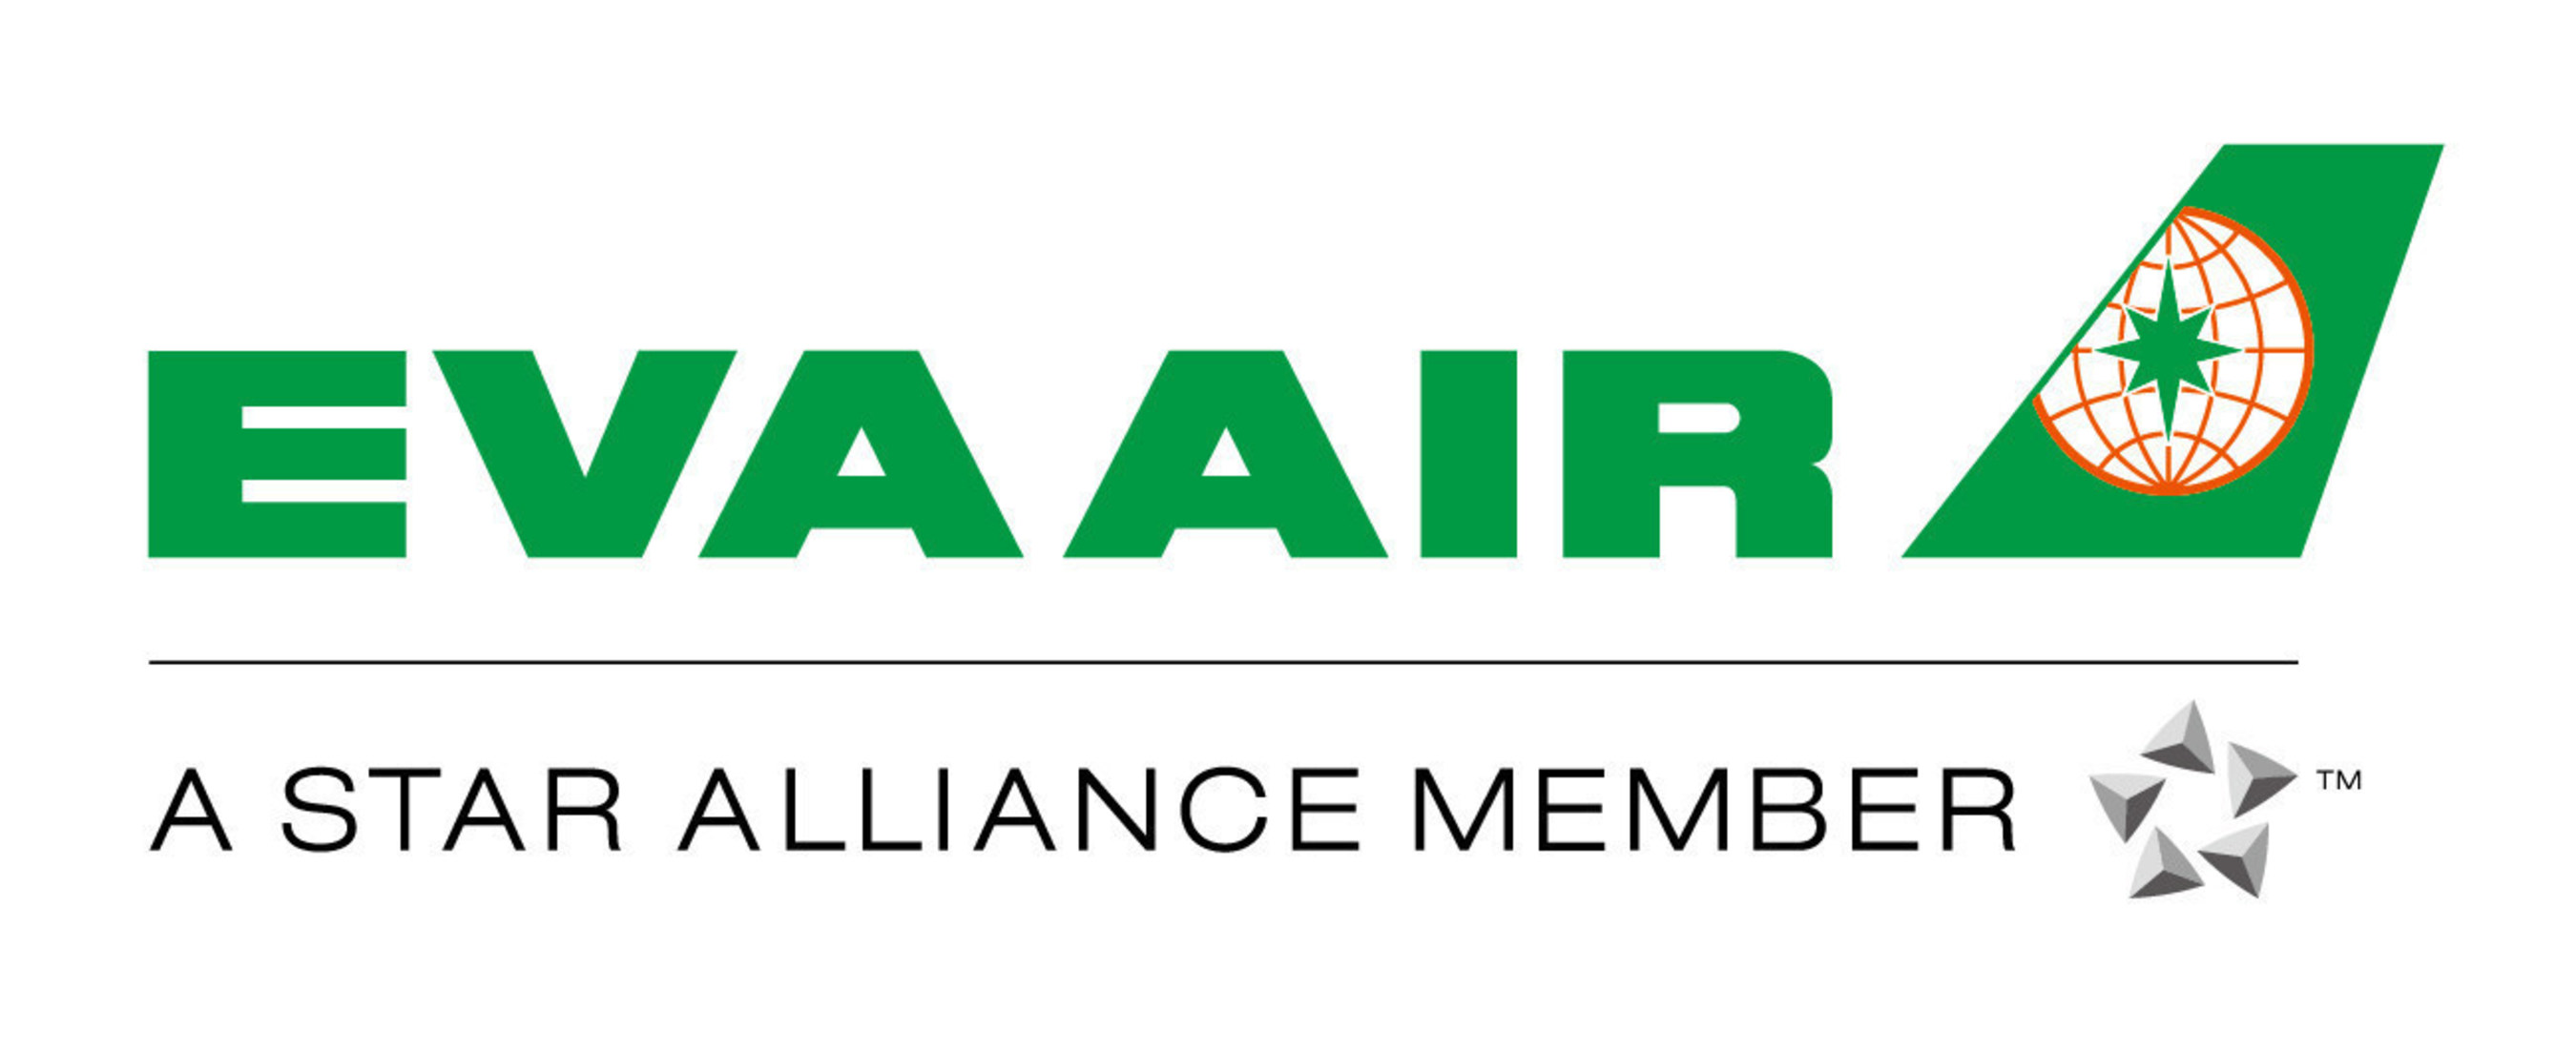 New EVA Air logo 11 Nov, 2015